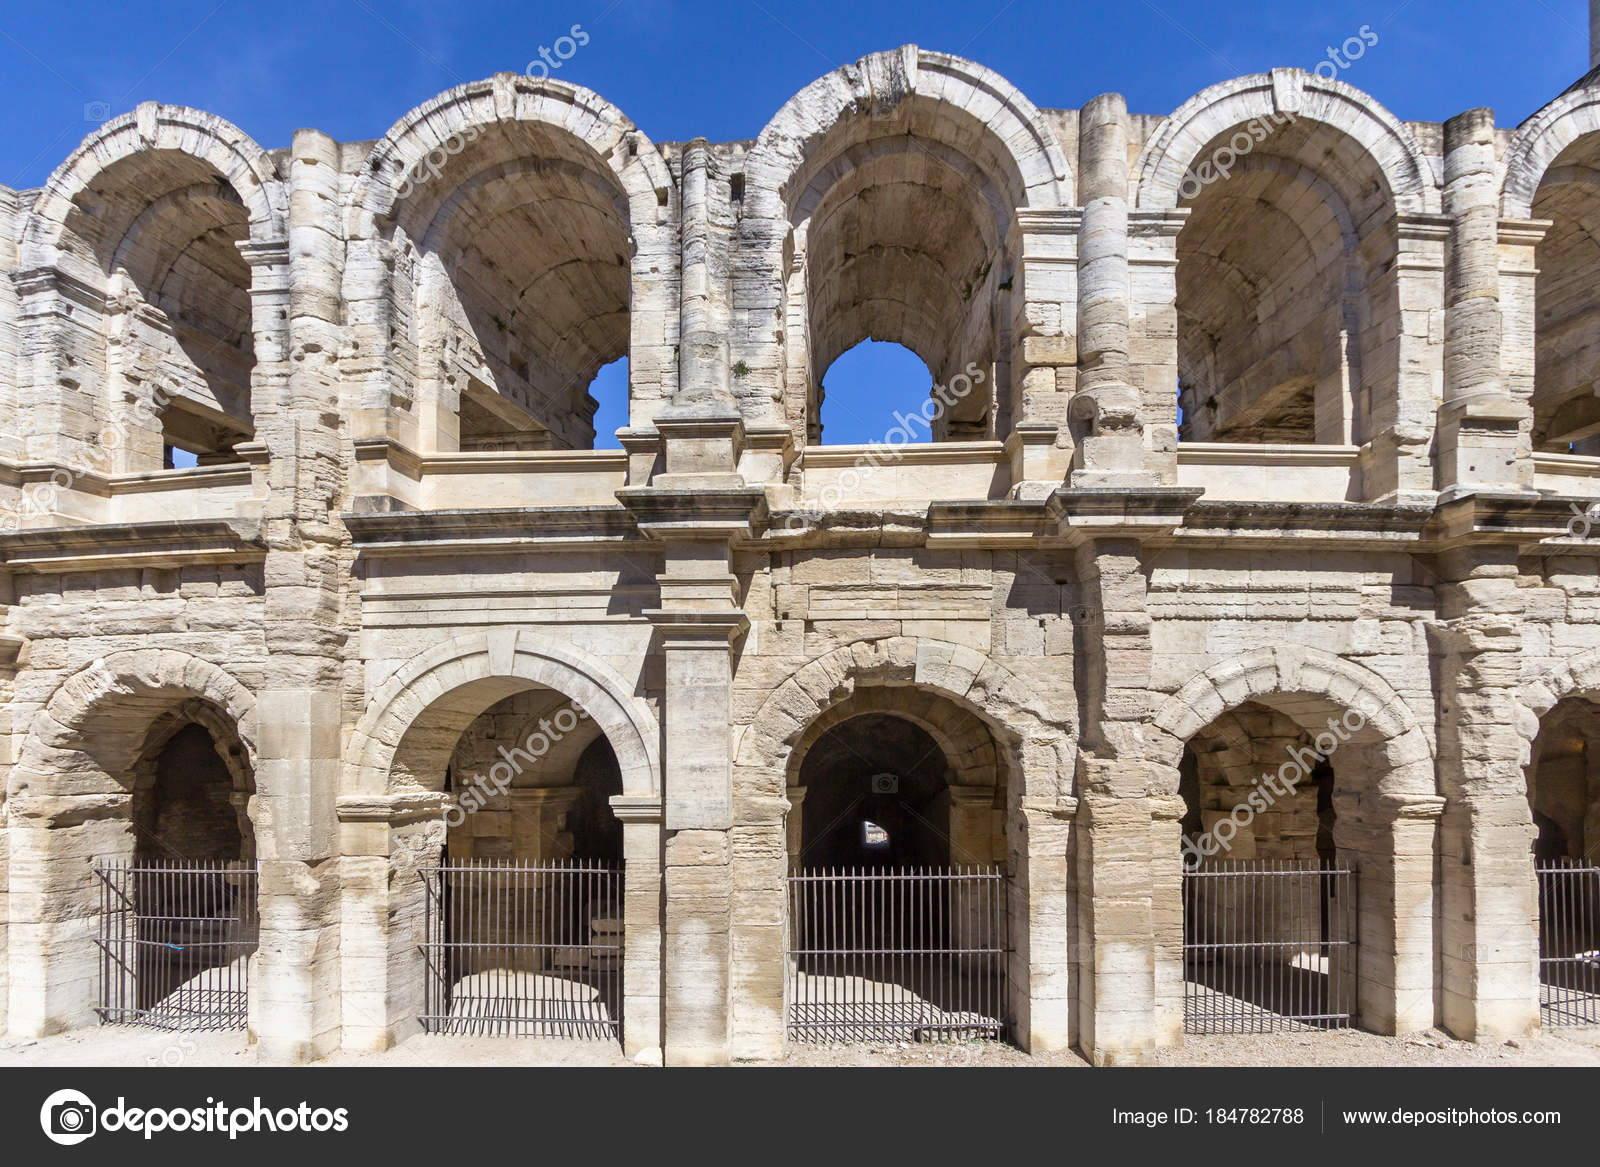 Wat Is Een Amfitheater Romeins Amfitheater In Arles Frankrijk Stockfoto Cahkt 184782788